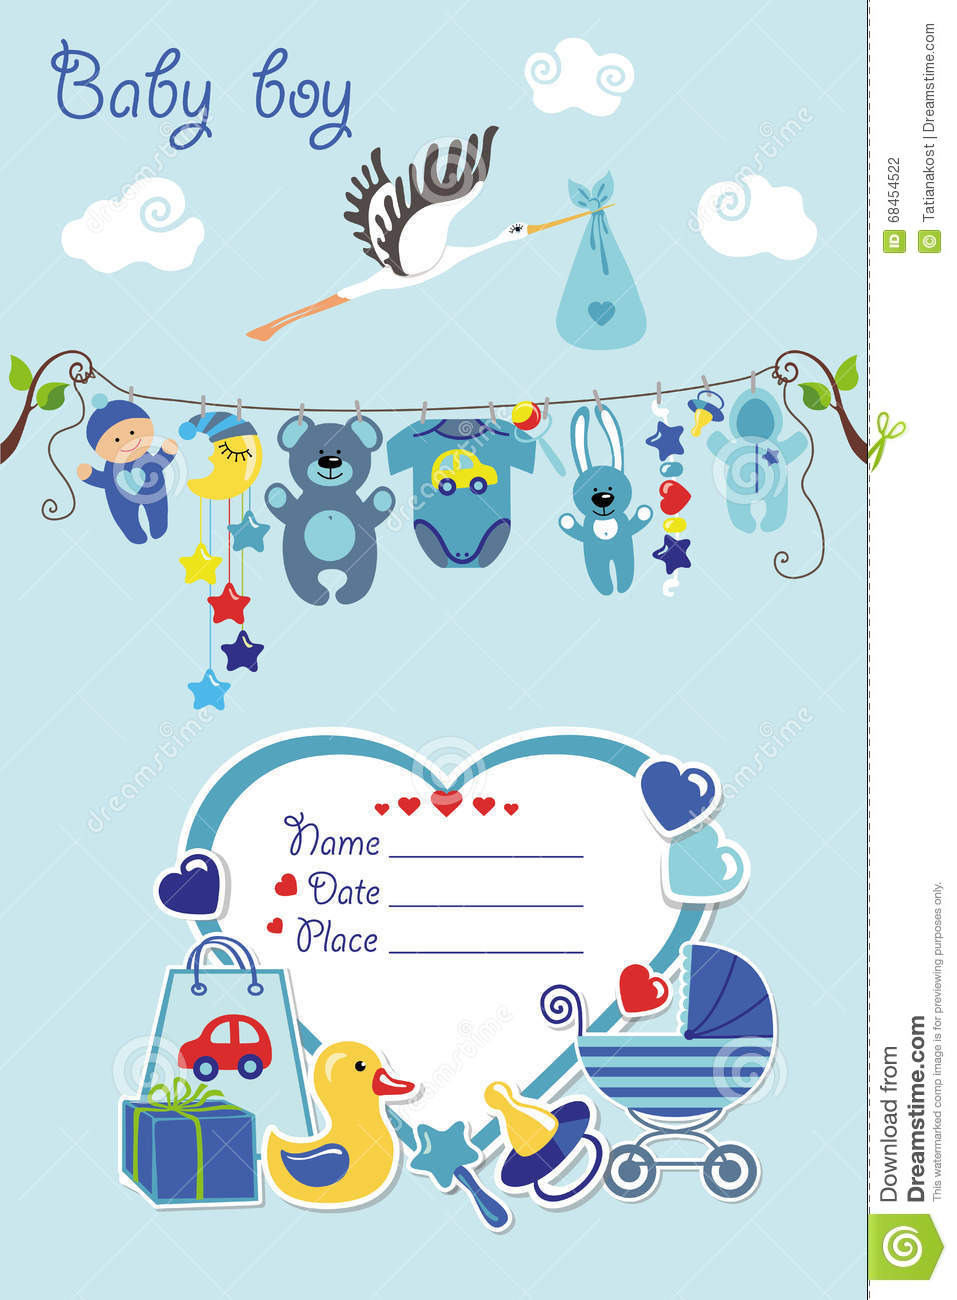 Baby boy arrival card vector by leonart image 600444 vectorstock - New Born Baby Boy Card Shower Invitation Stock Vector Wallpaper Gallery Vector Baby Boy Card